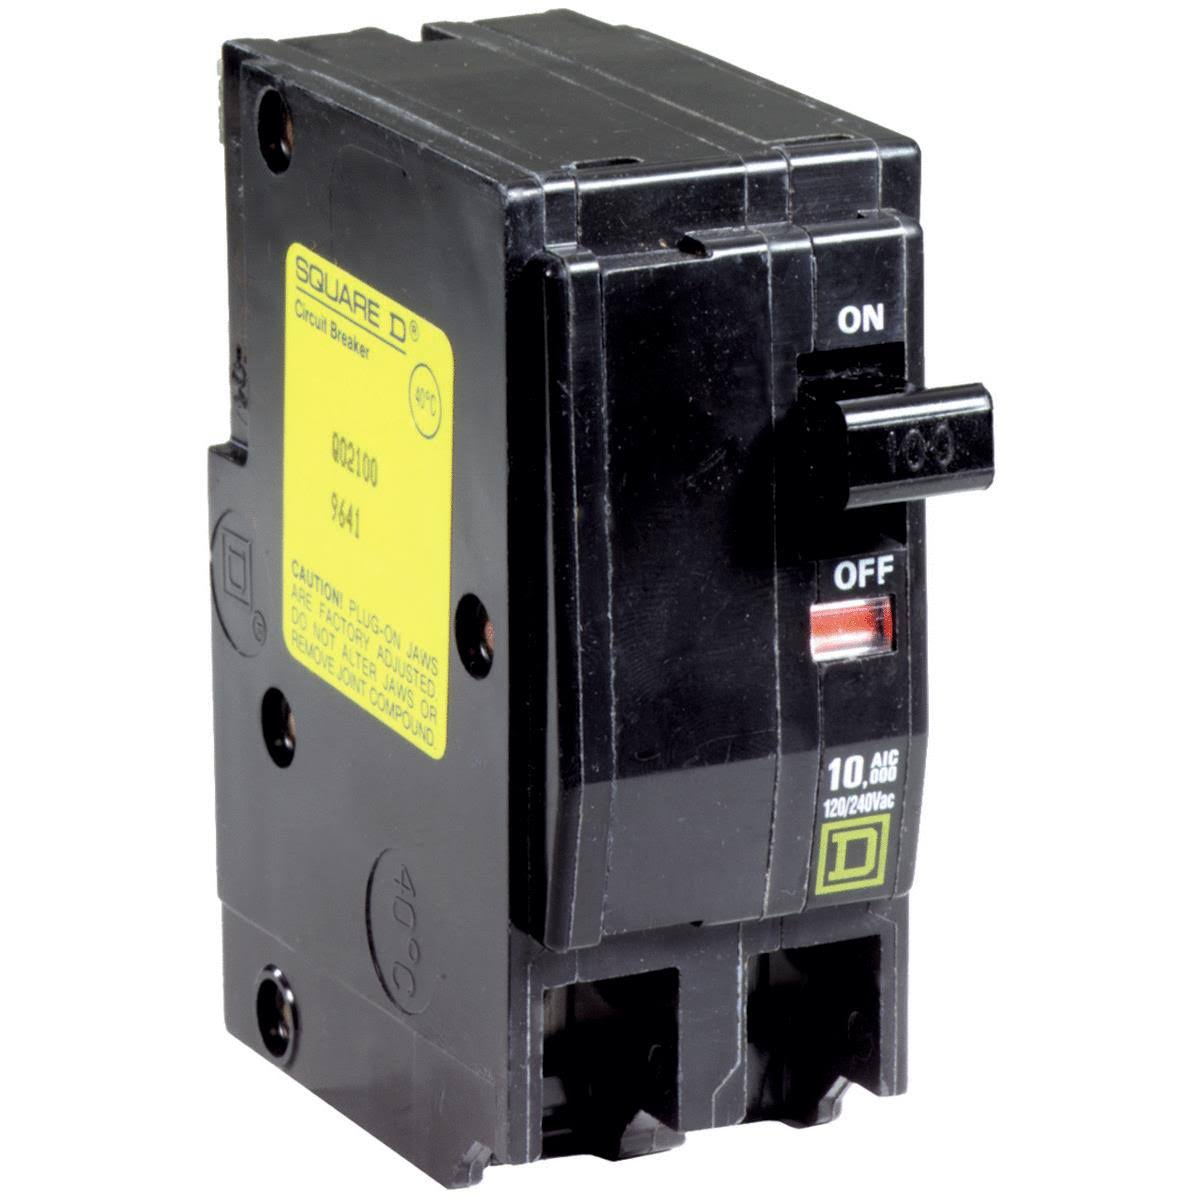 Square D Circuit Breaker - 100 Amp, 2 pole